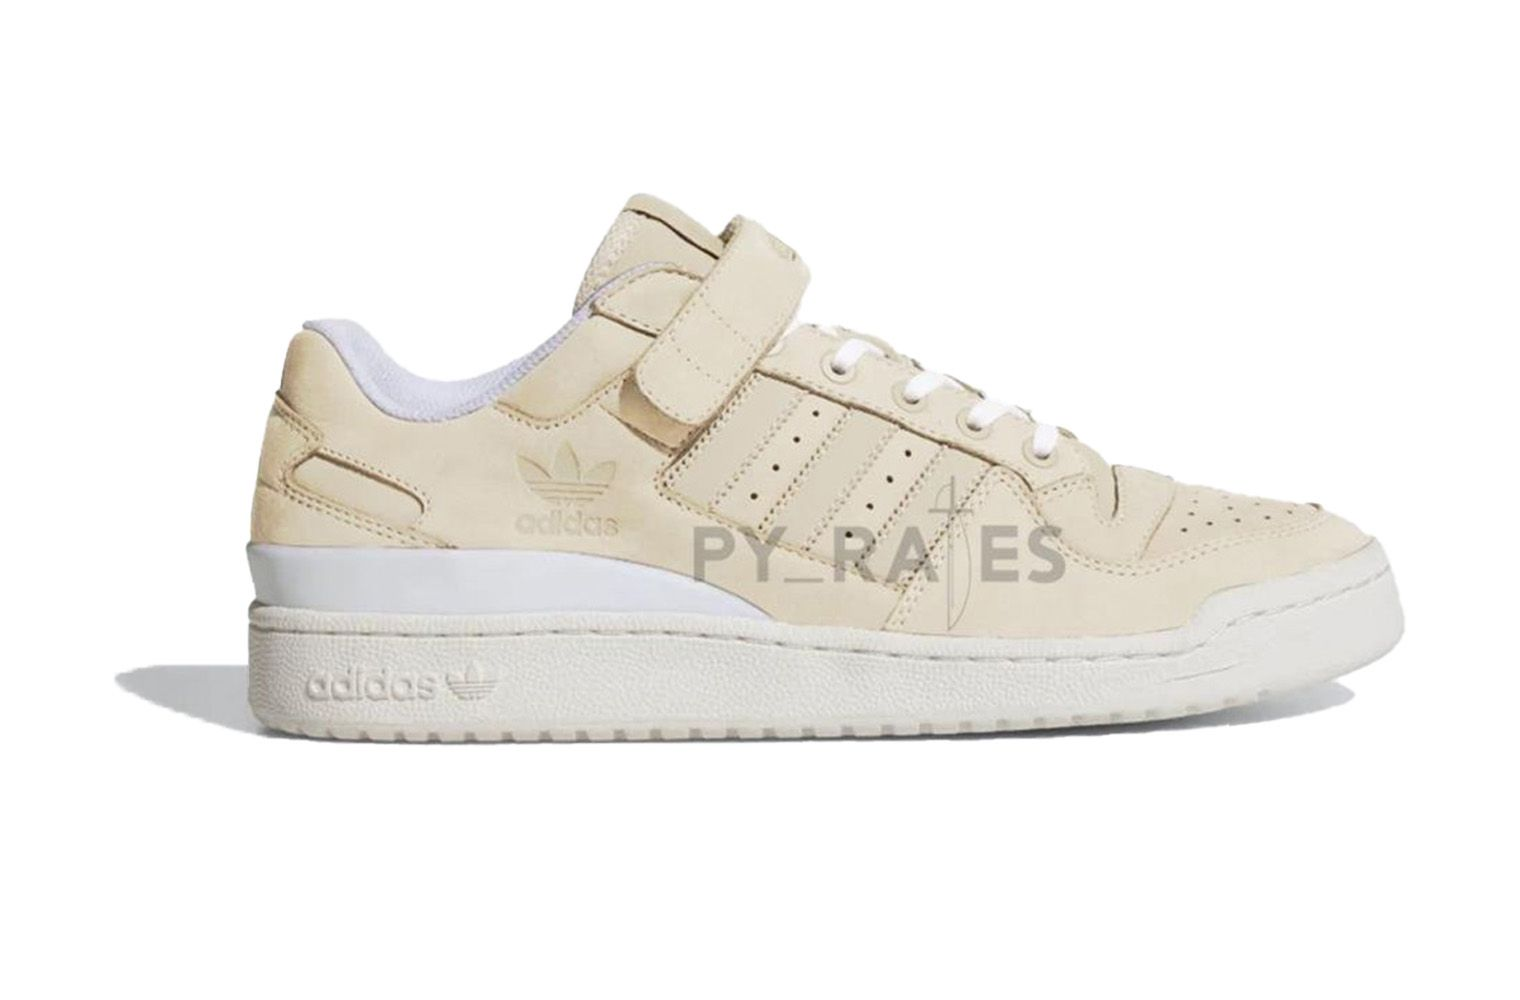 IVY PARK x adidas 2.0 Forum Low